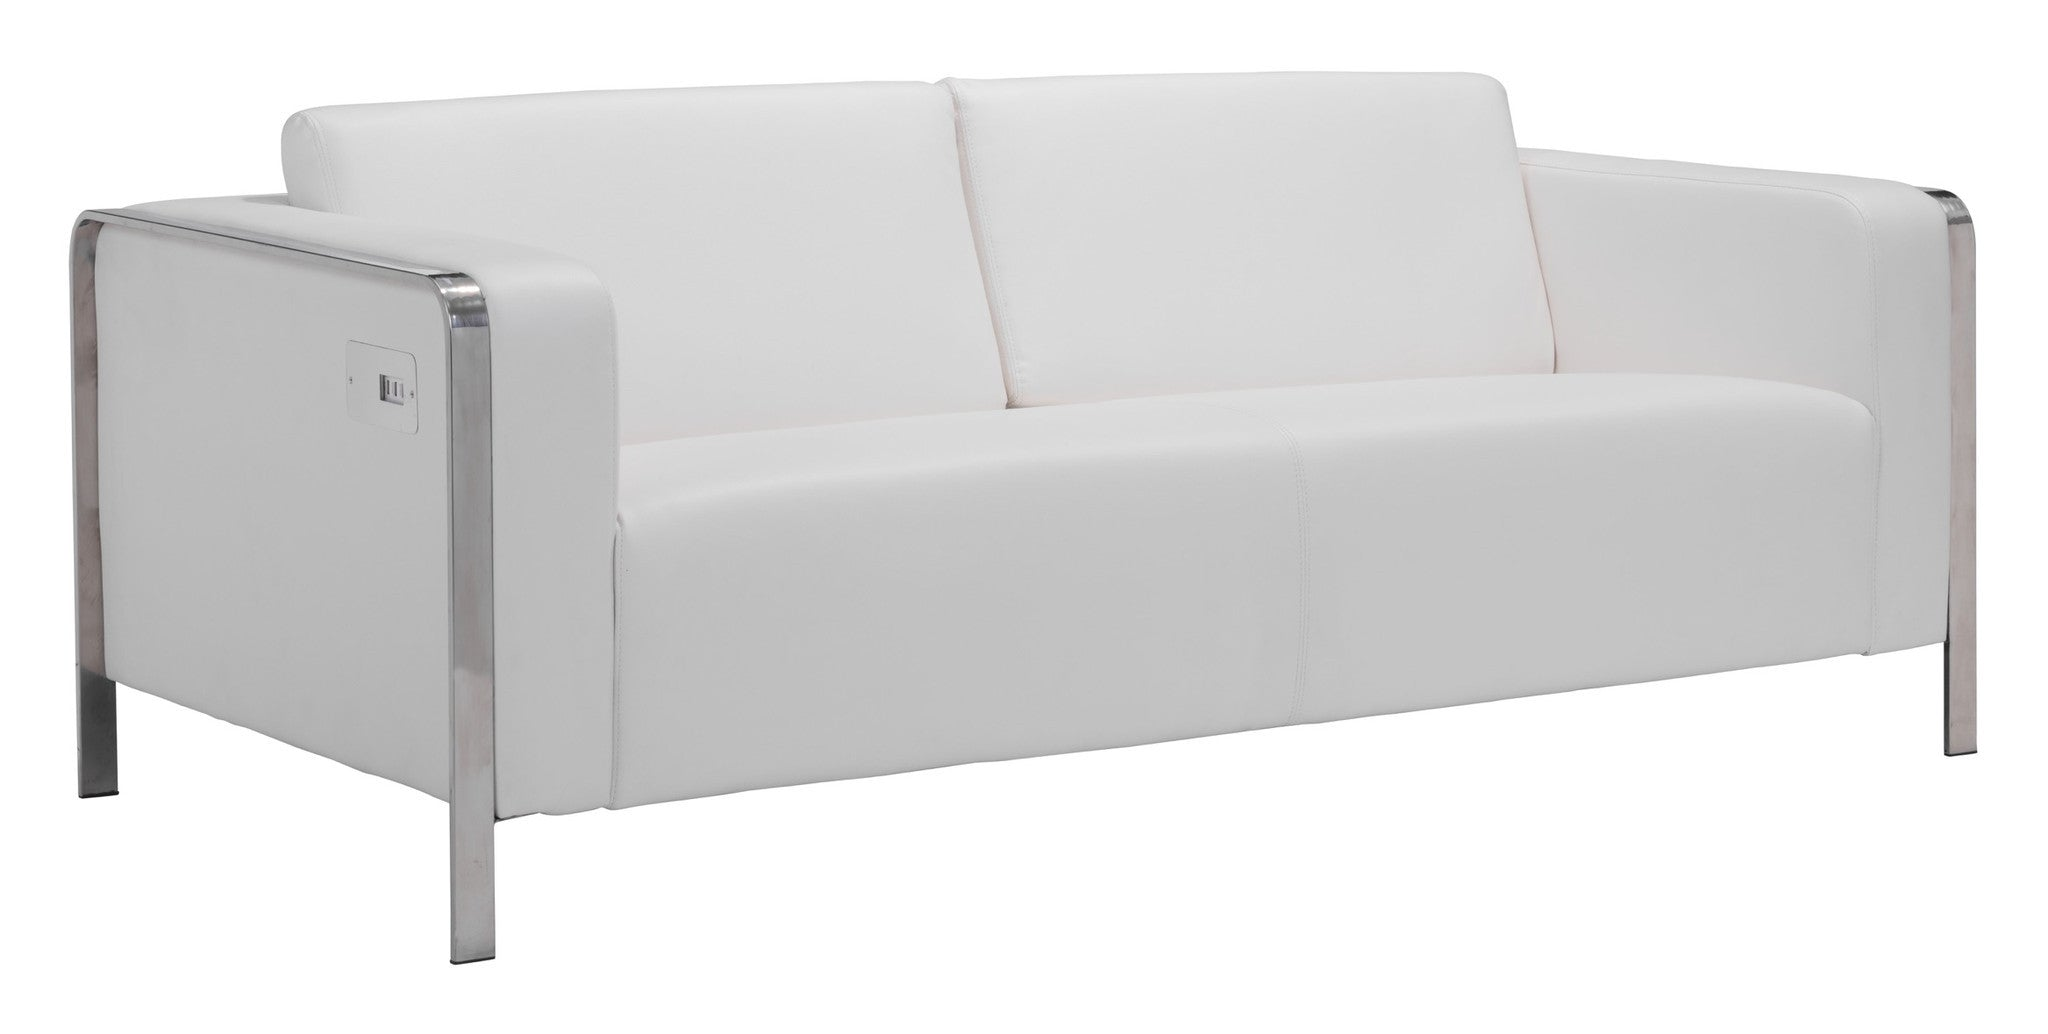 how match a living sofa purple of decor to loveseat your white gallery best amazing set alan room and